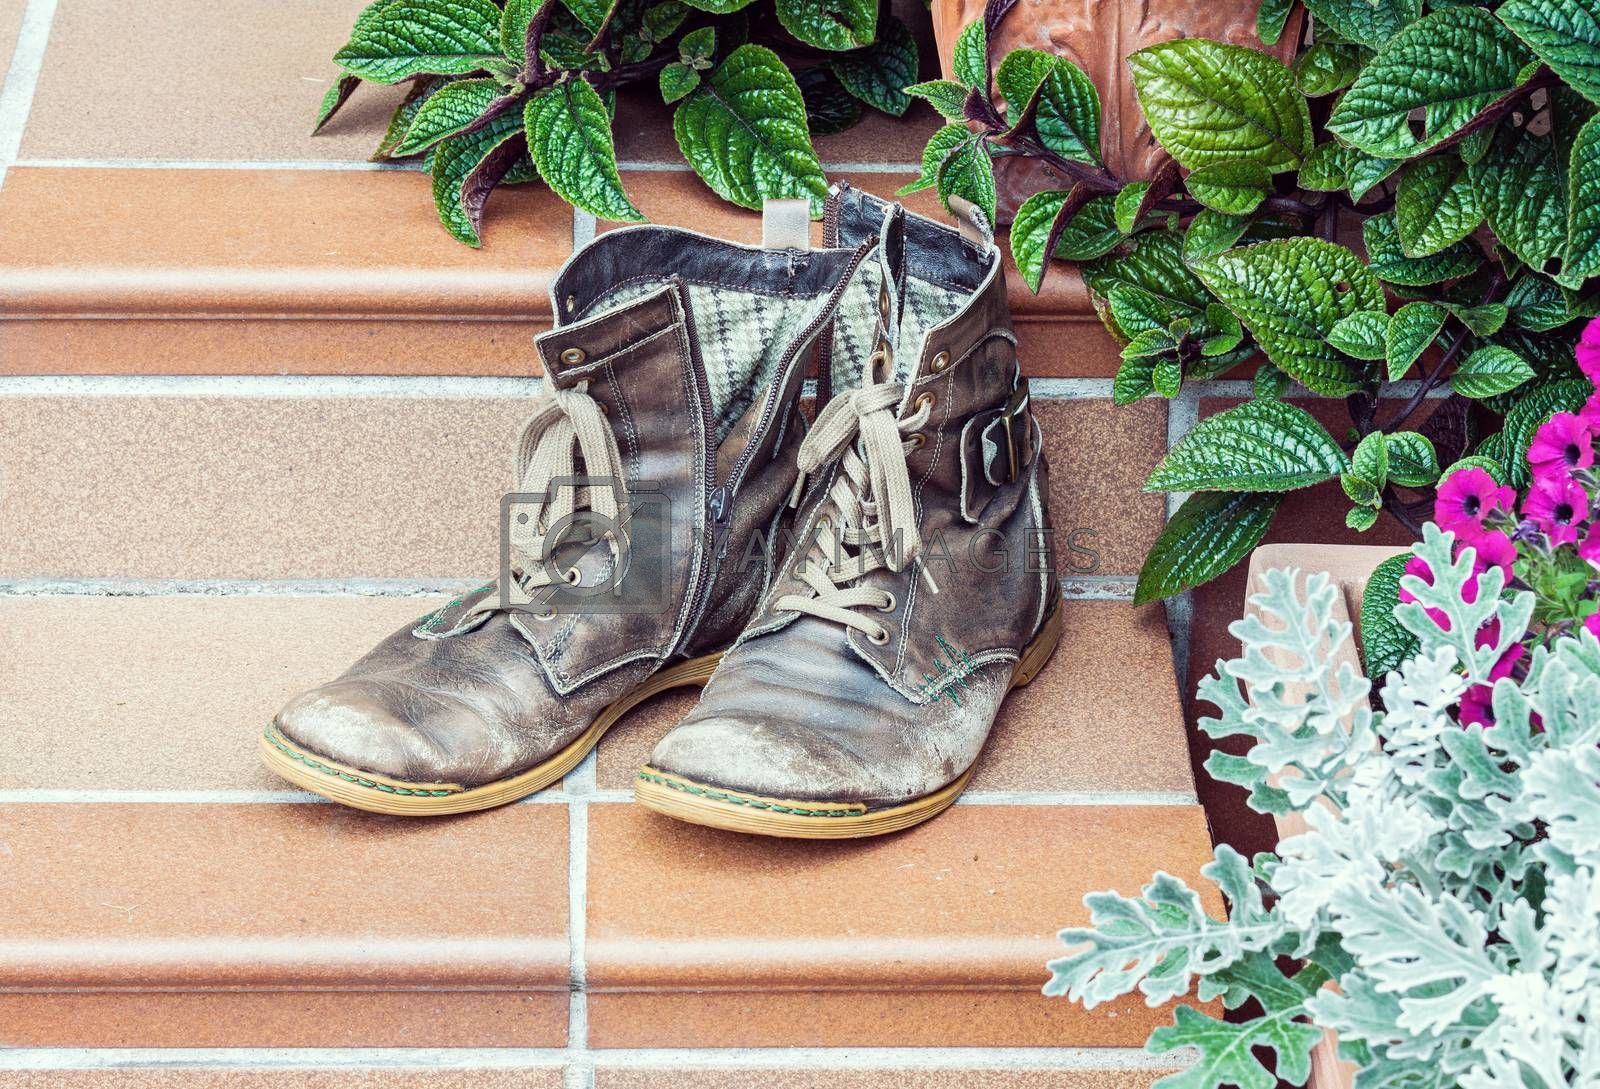 Pair of old worn out boots at doorstep with plants in background